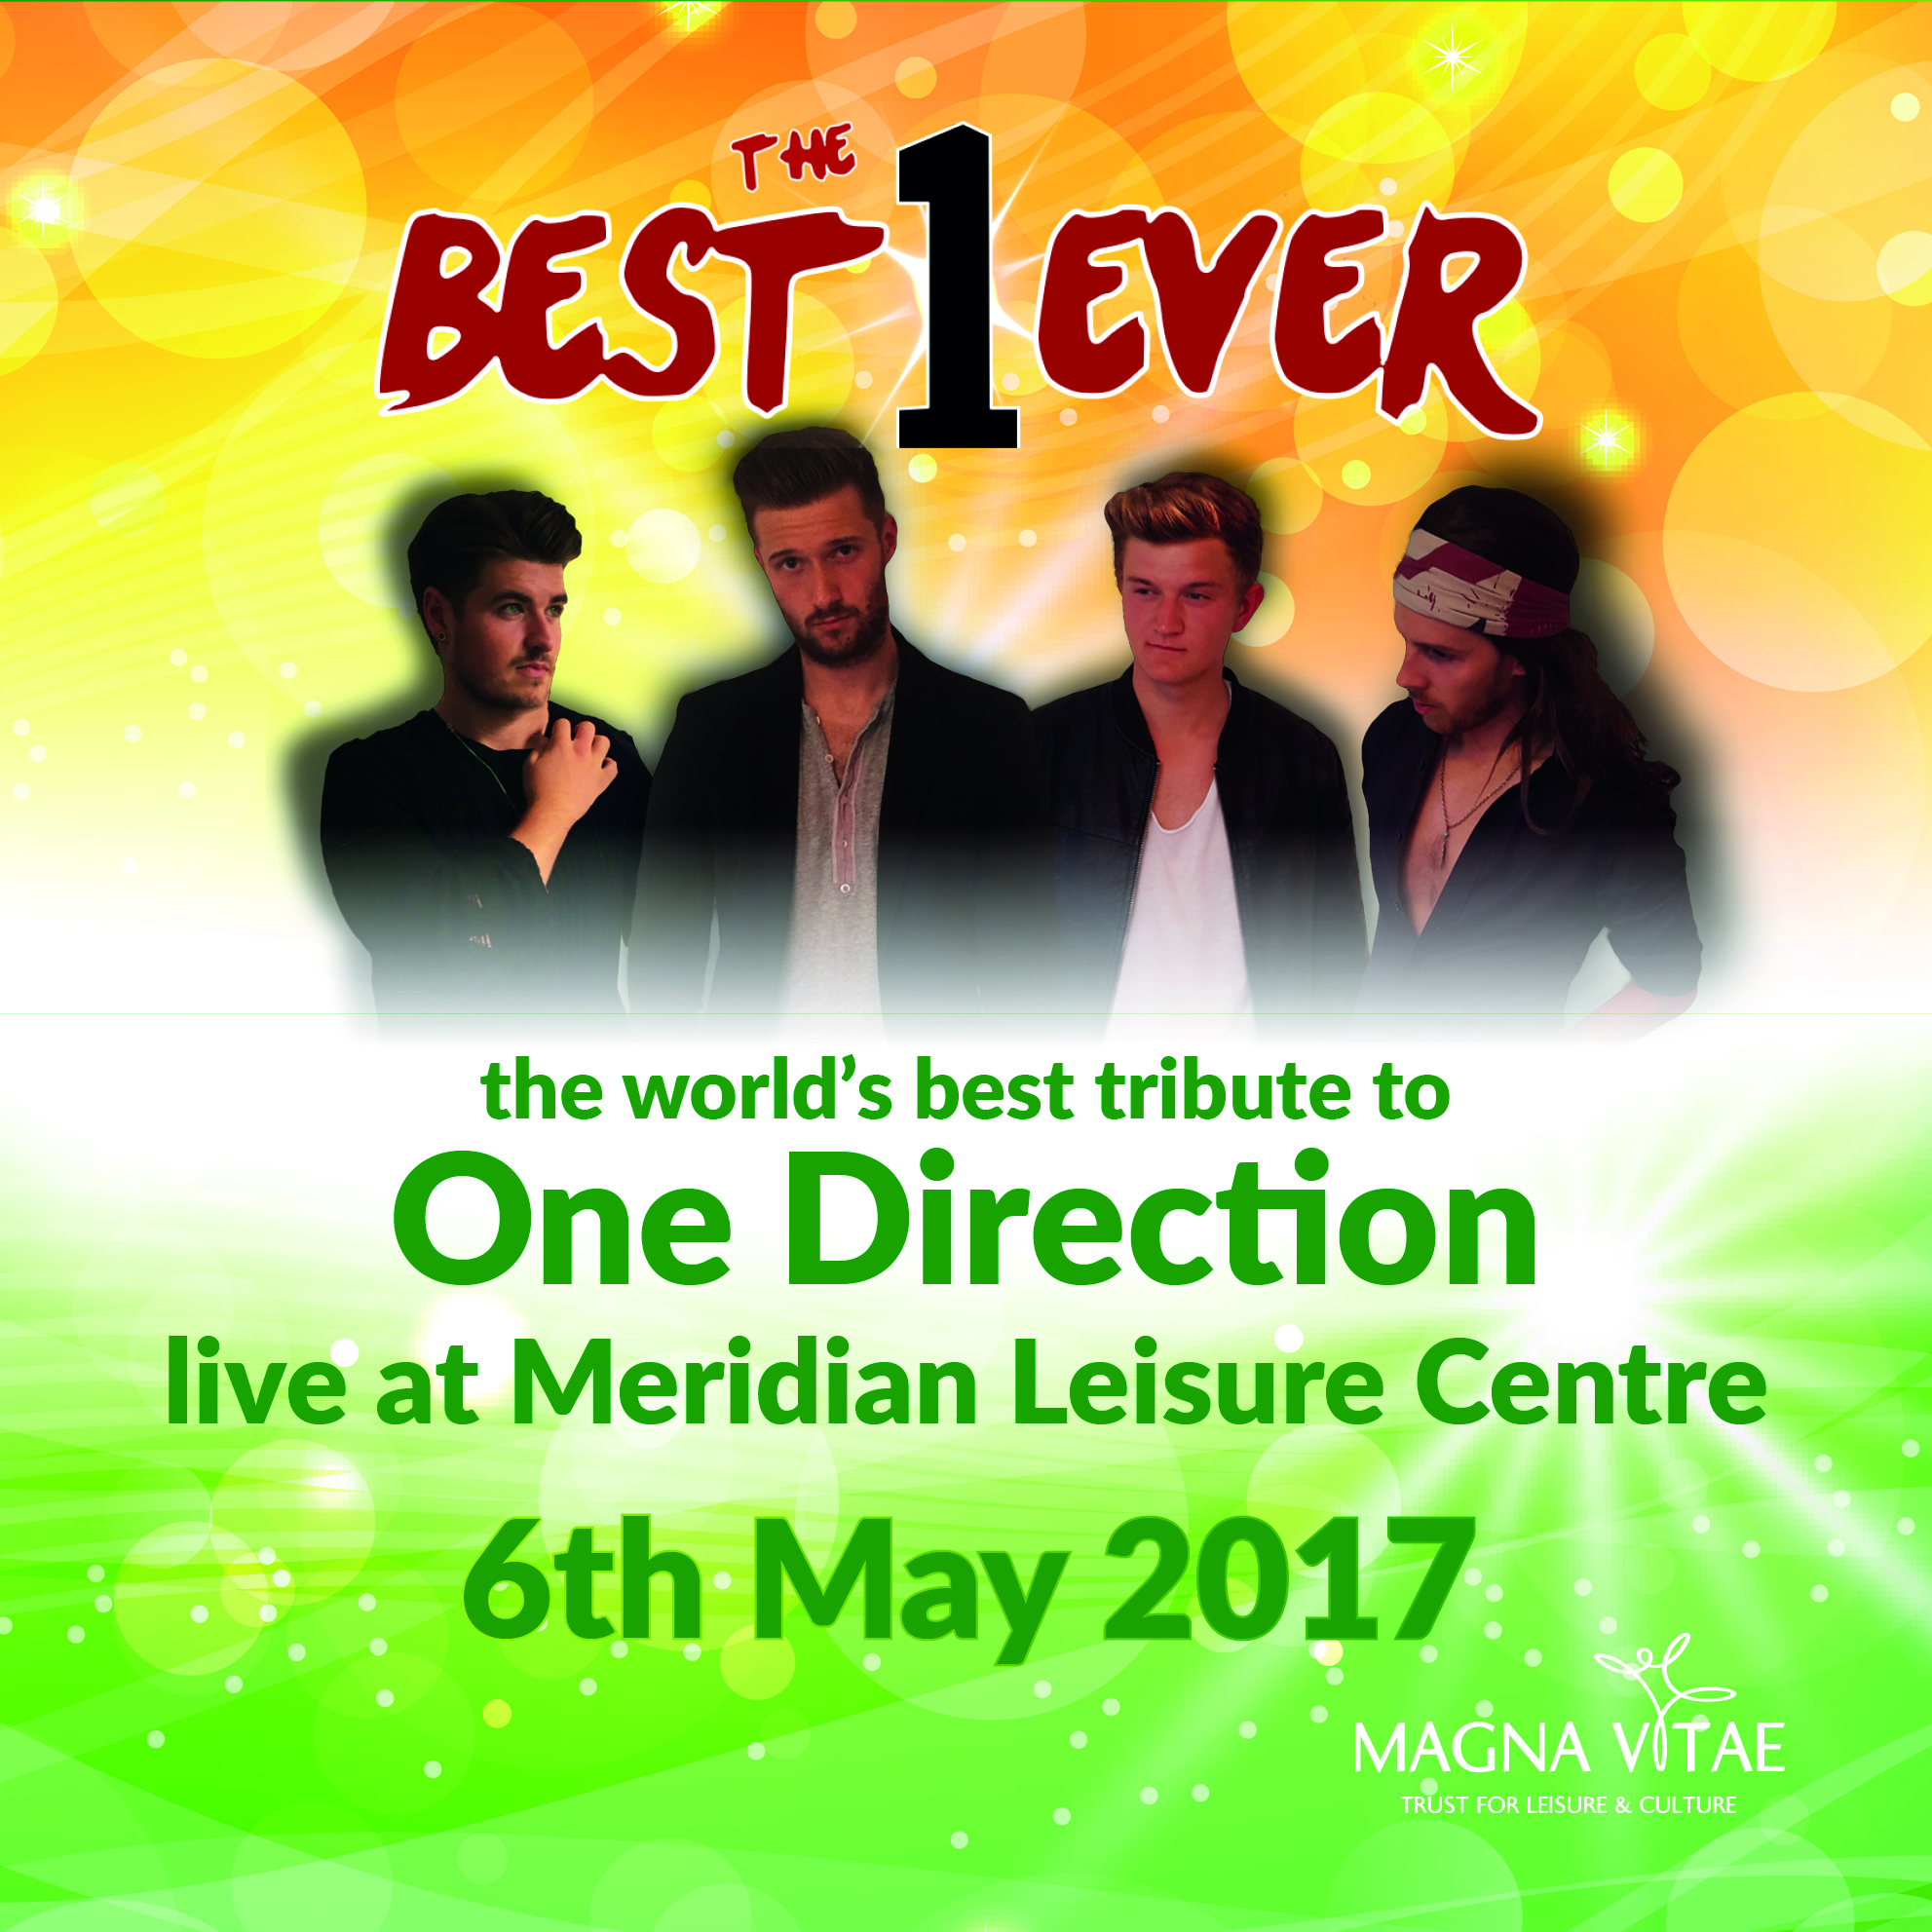 The Best 1 Ever Slider, One Direction Tribute, Louth, Lincolnshire, Meridian Leisure Centre, Event, Concert